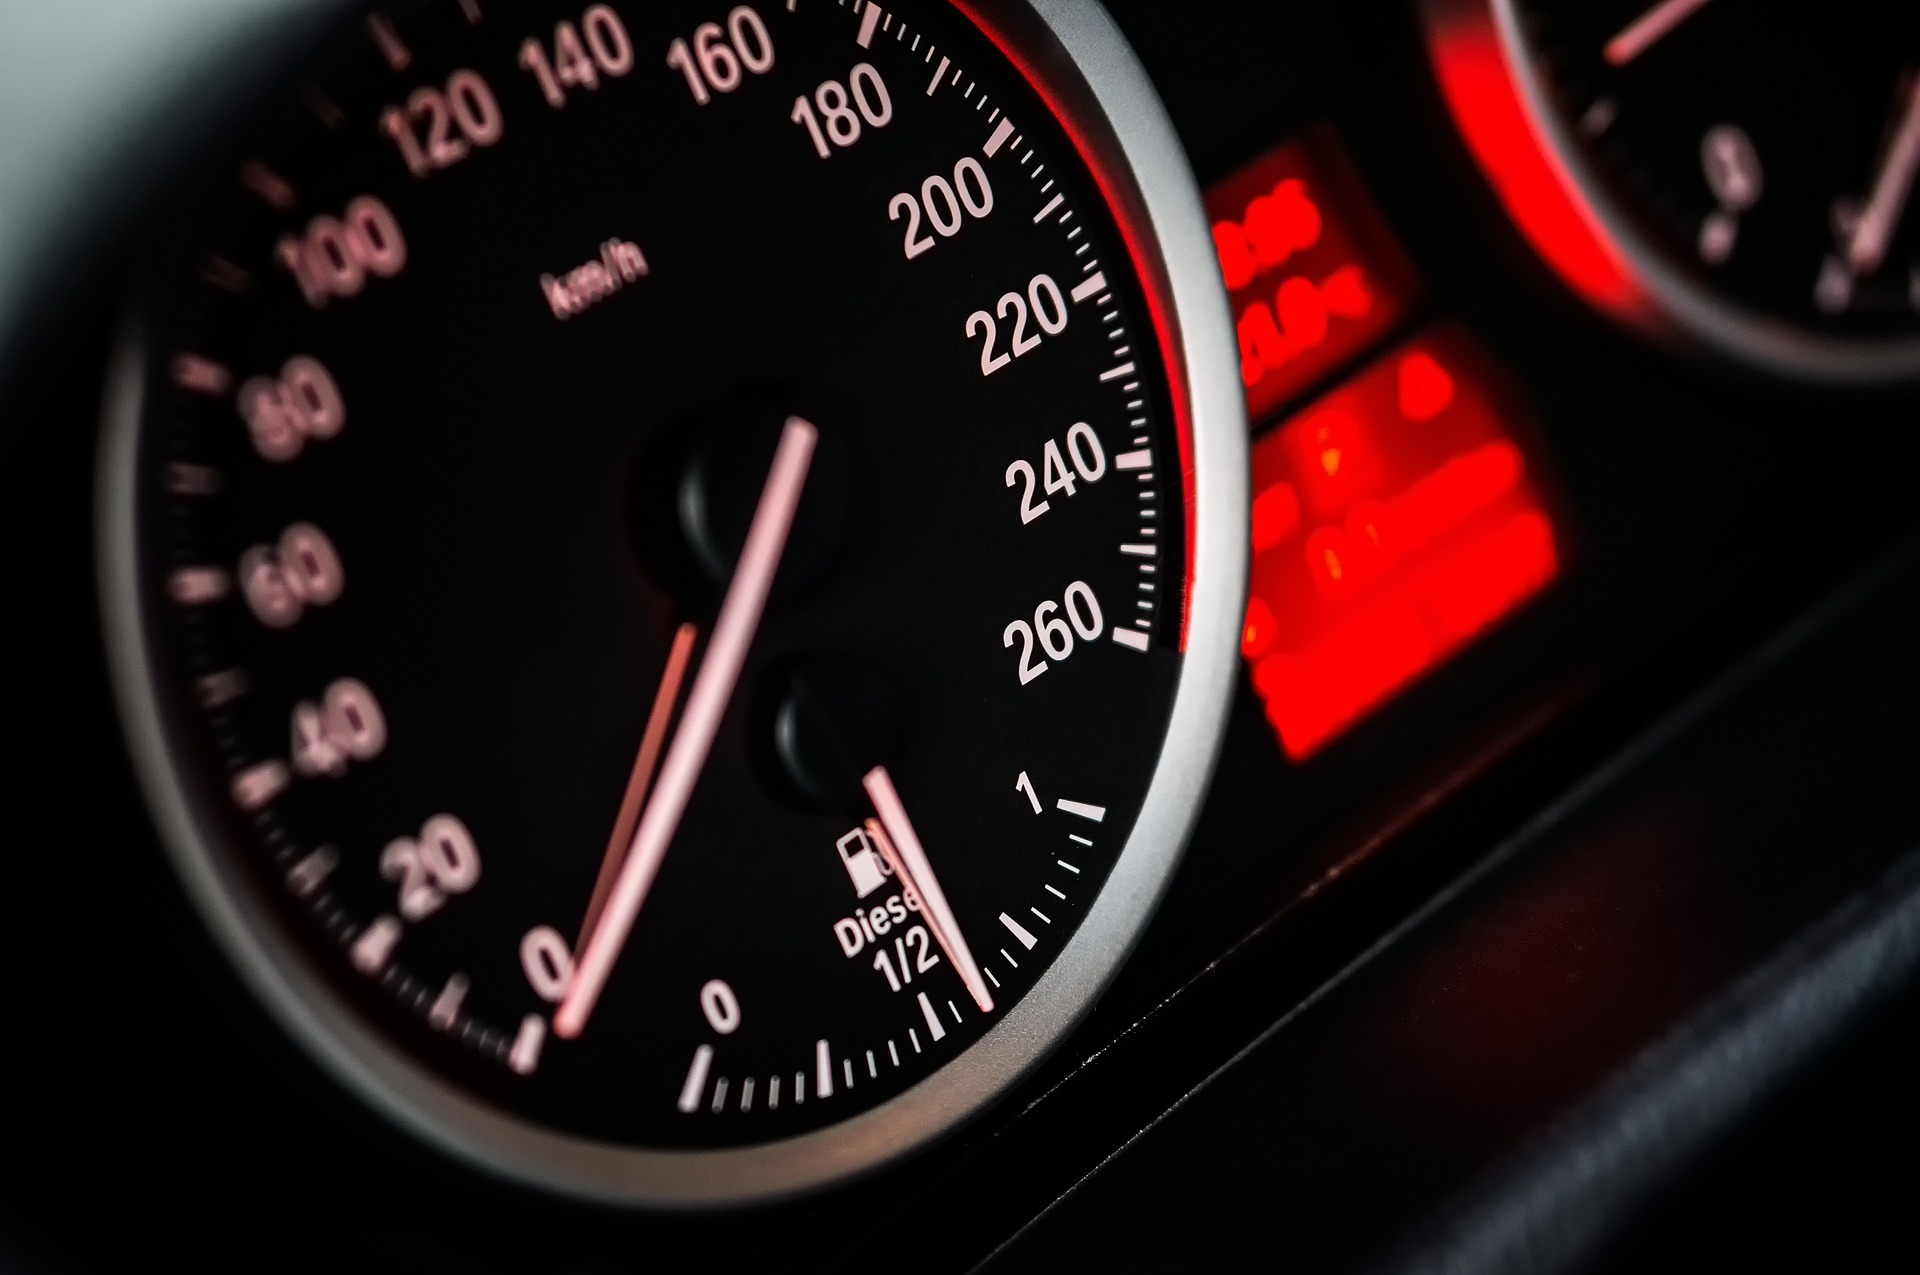 Finesse Driving Academy - Speedometer